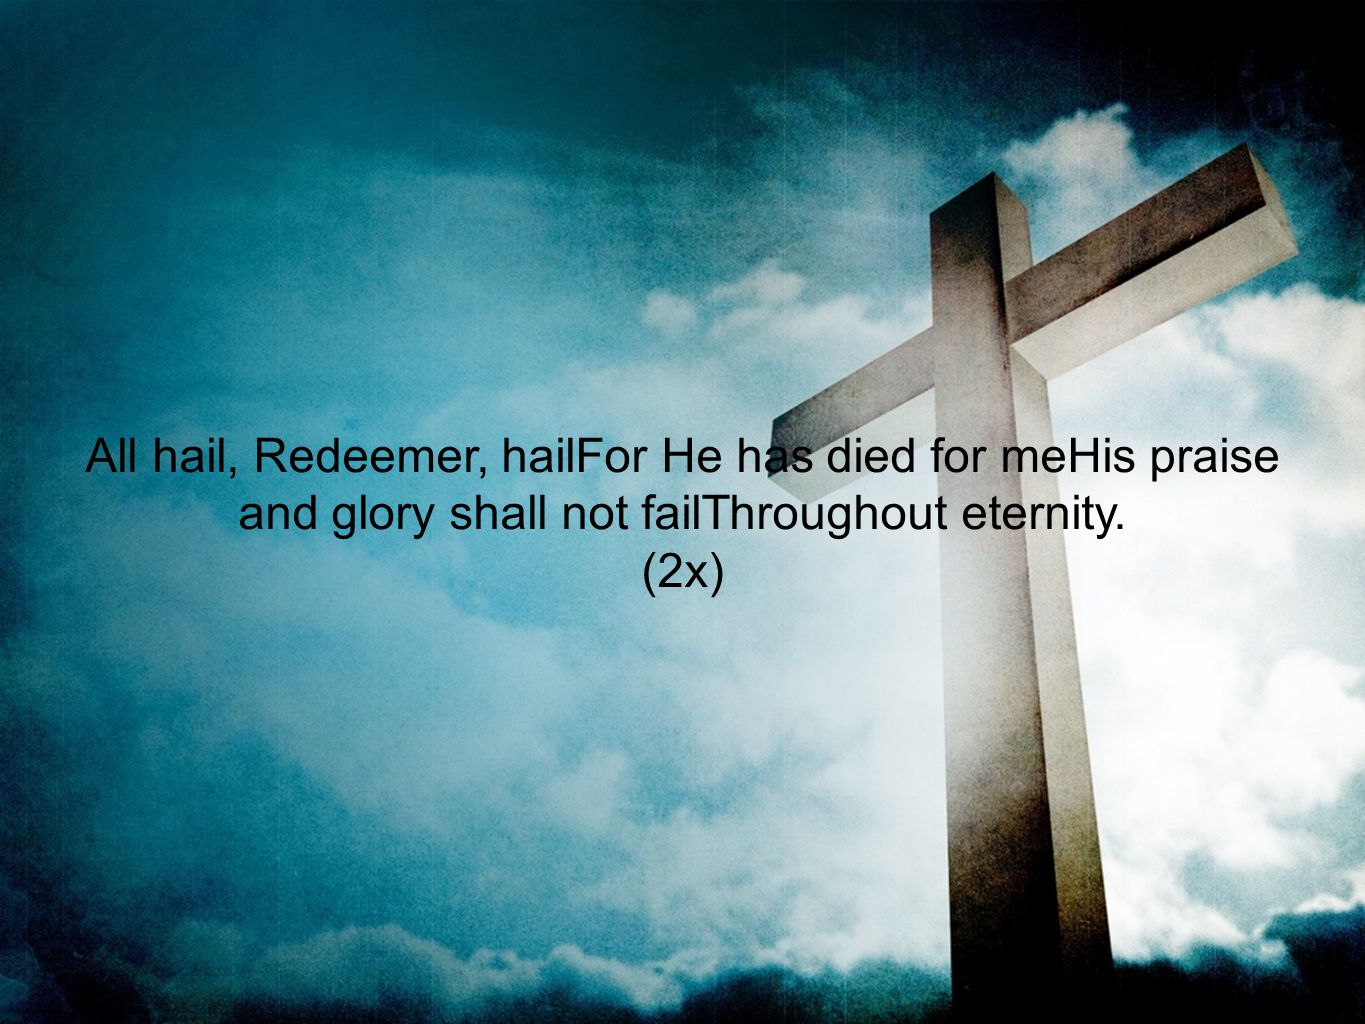 All hail, Redeemer, hailFor He has died for meHis praise and glory shall not failThroughout eternity.